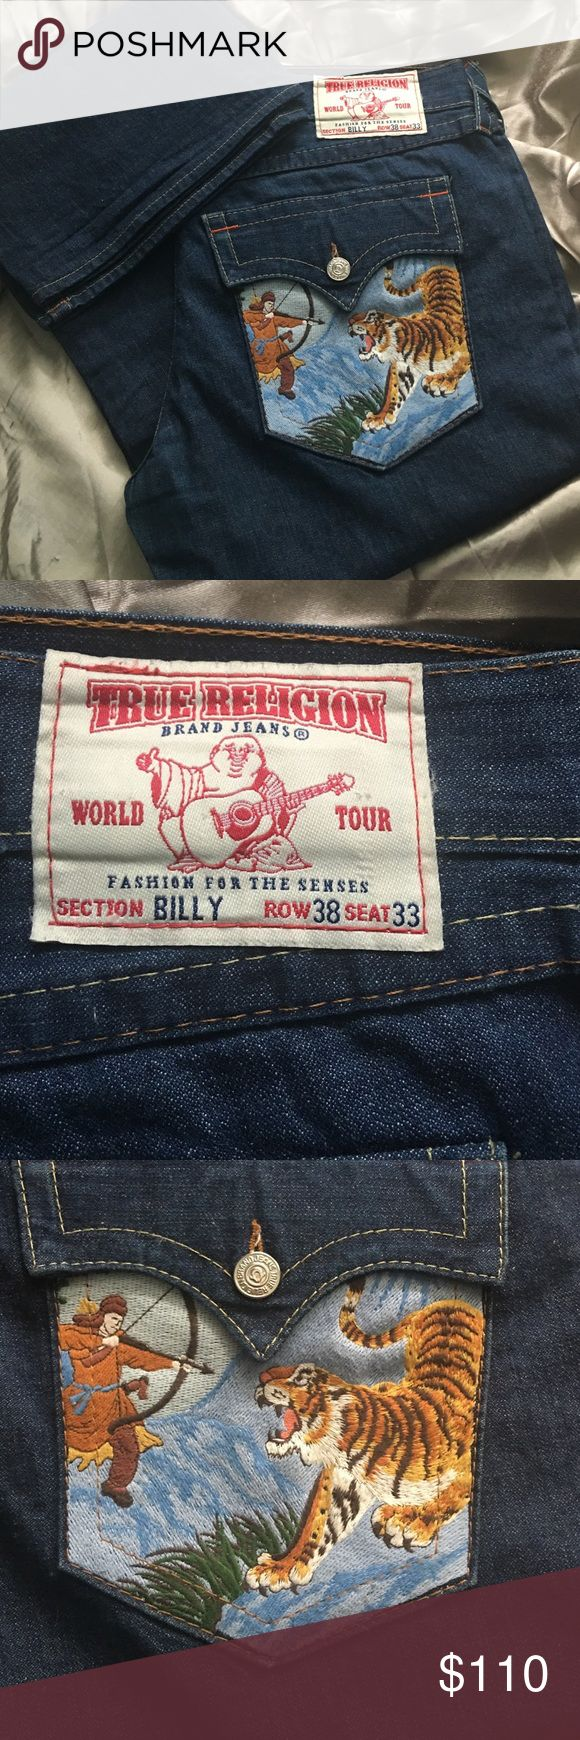 Men's true religions Men's classic true religion jeans Billy style size 38x33 vintage hard to find True Religion Jeans